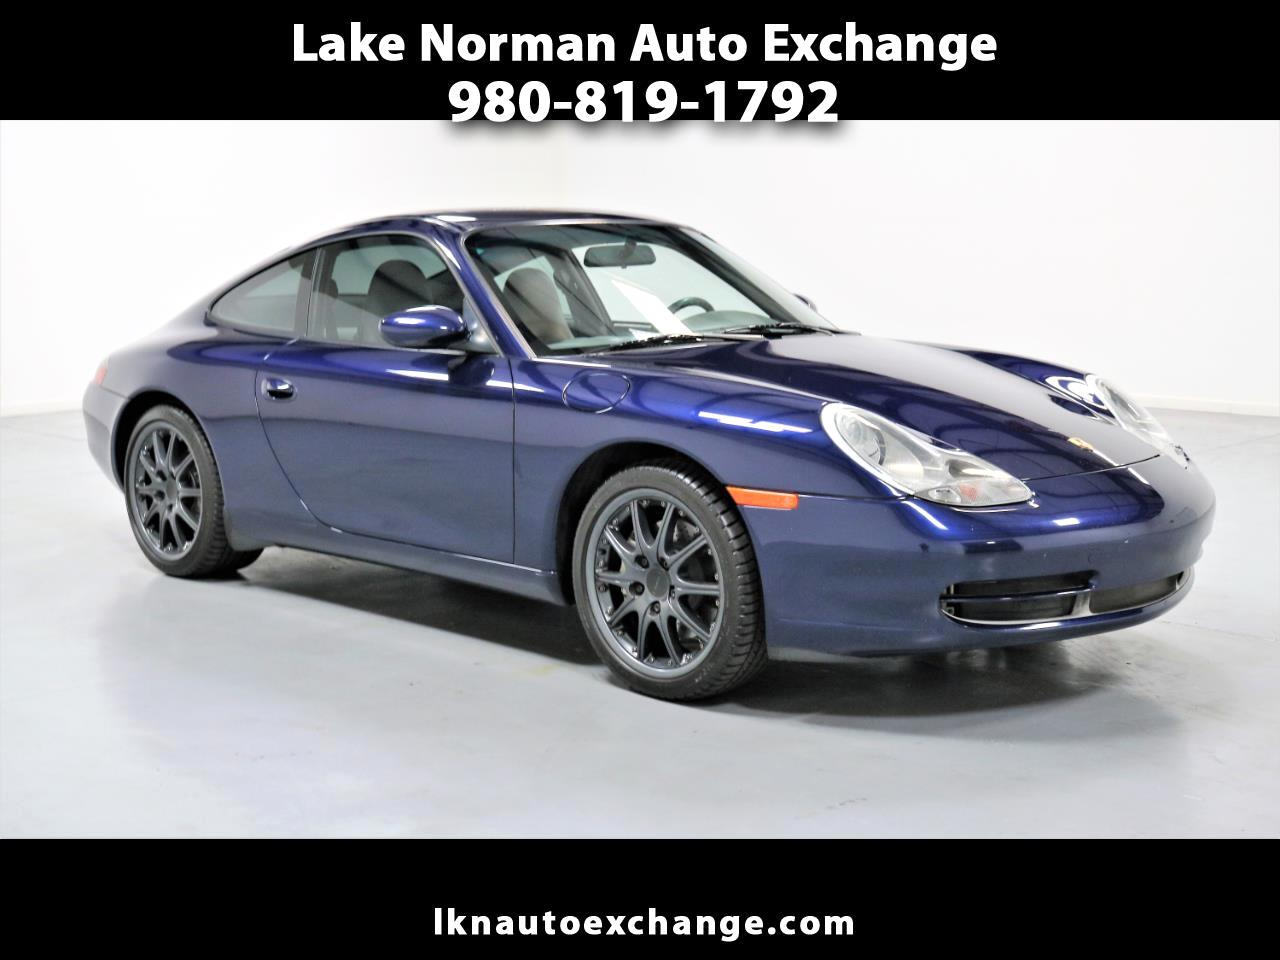 2001 Porsche 911 Carrera 2dr Carrera 4 Cpe 6-Spd Manual